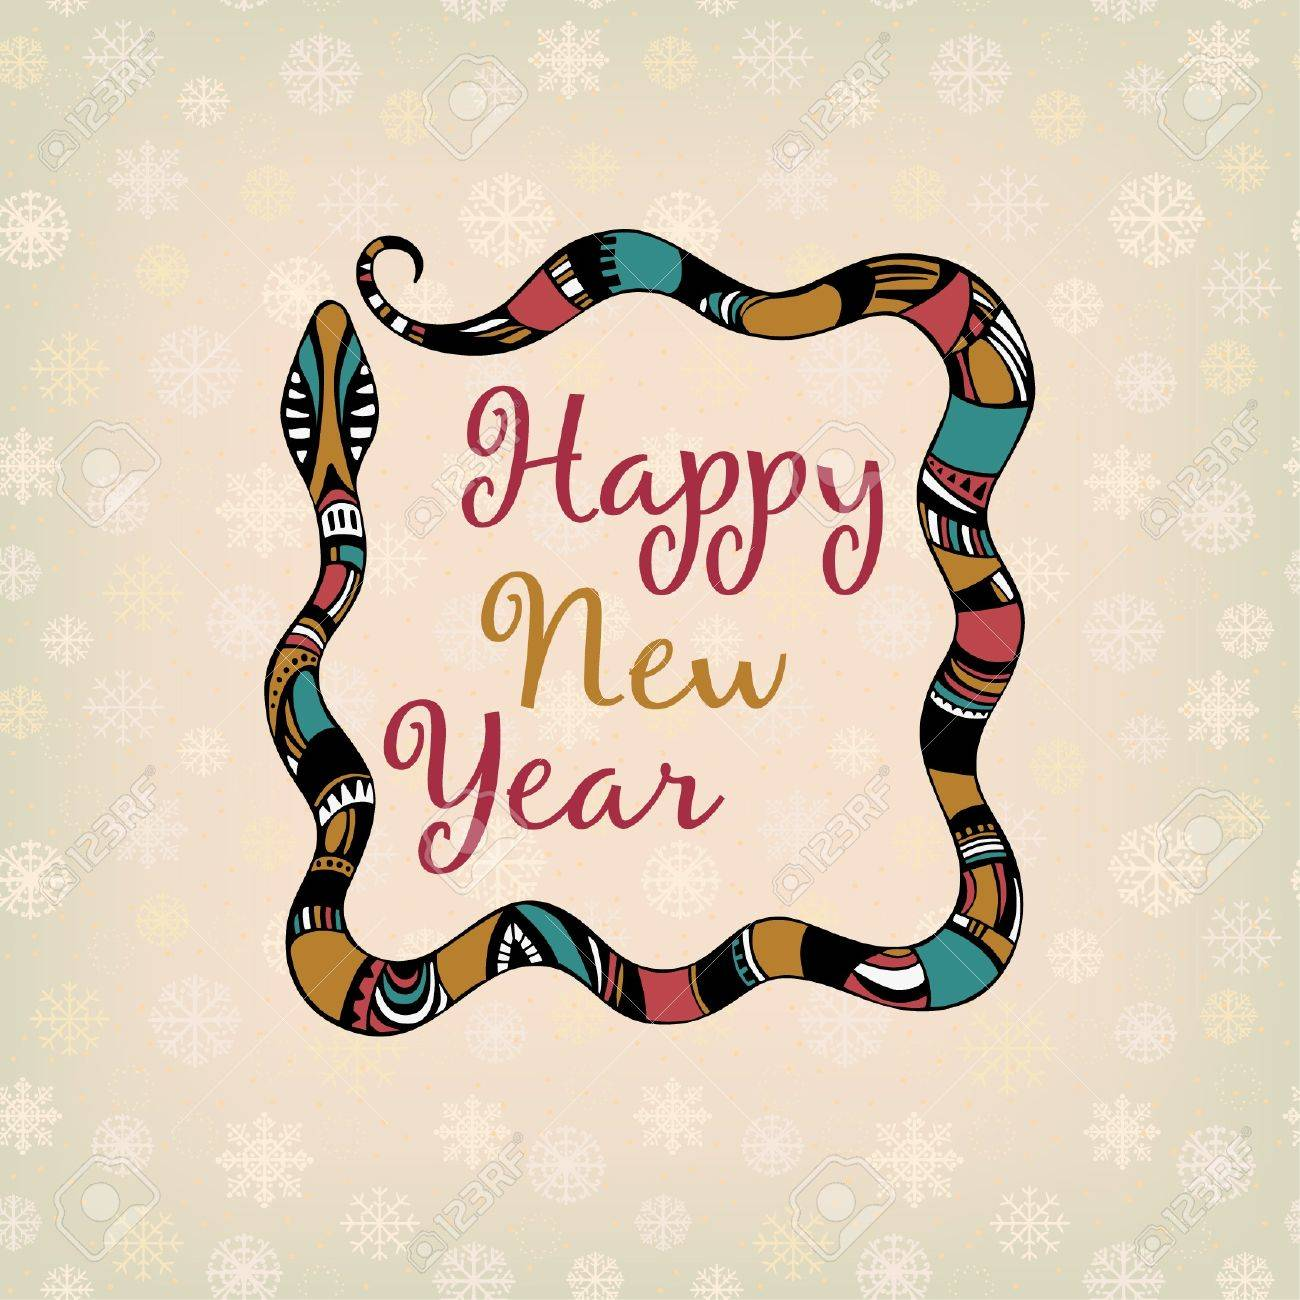 Ornamental illustration with snake and sample text for design and decoration New Year  s greeting card  Text background with place for your text Stock Vector - 17272570